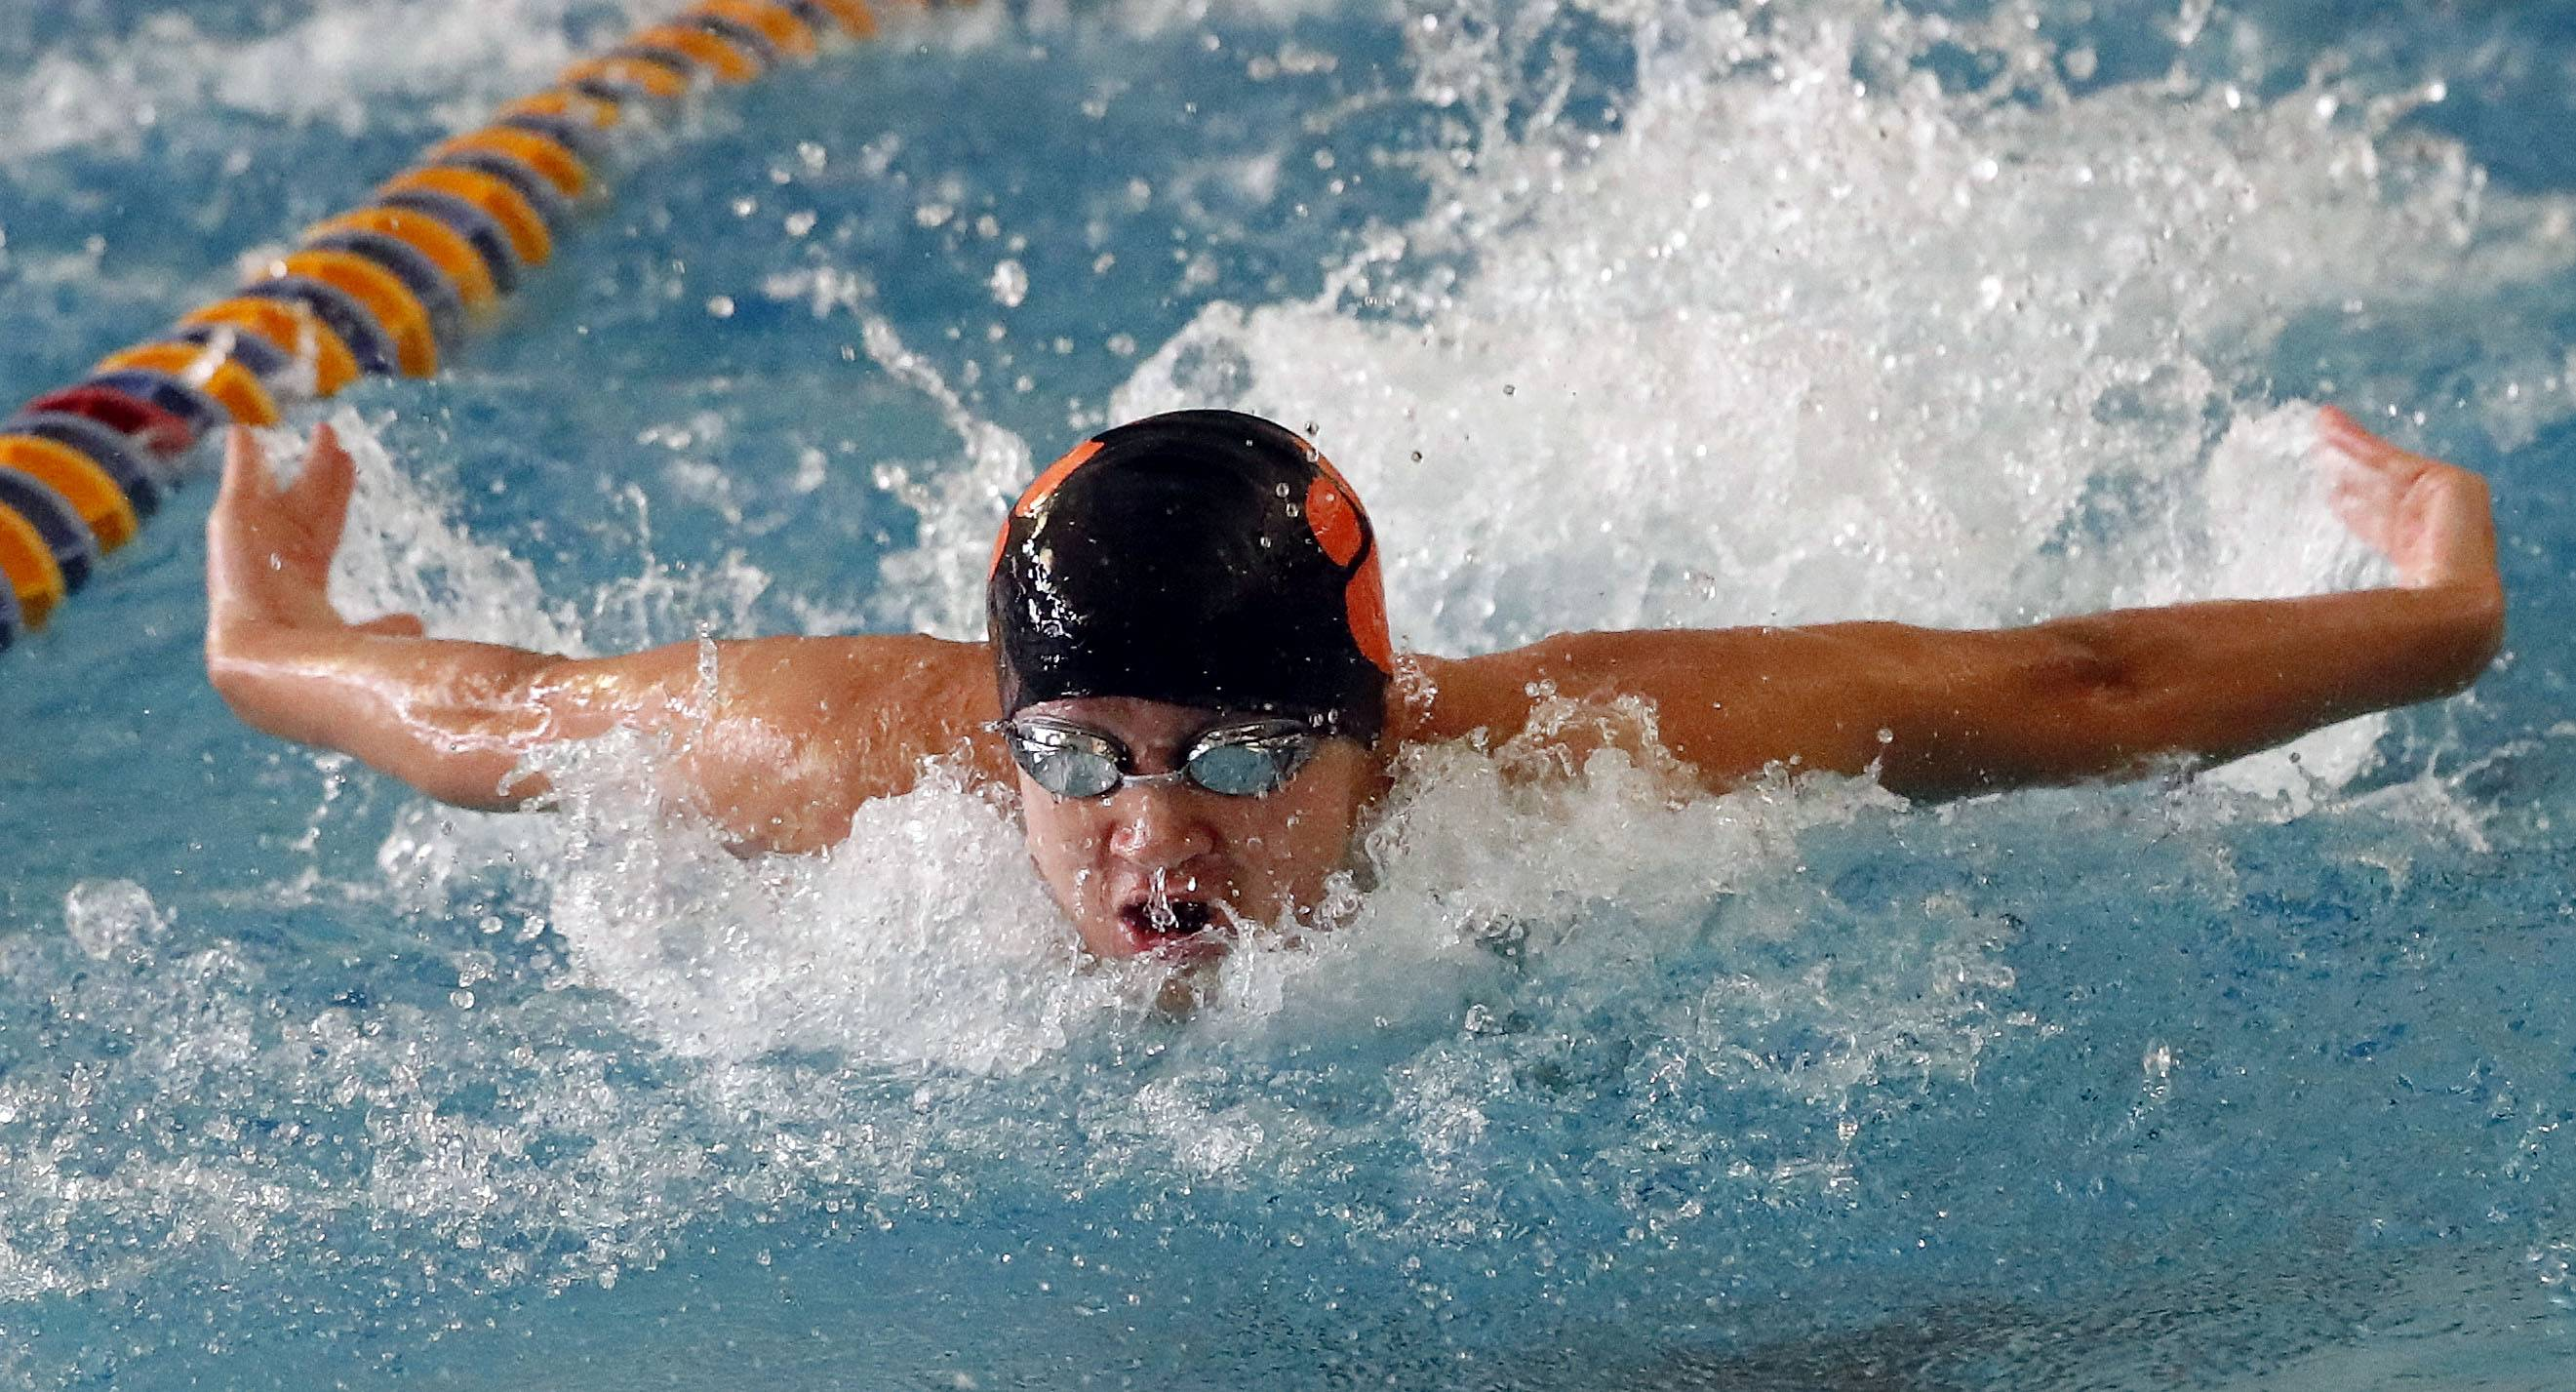 Libertyville's Lawrence Wang swims in the 200 medley relay during the North Suburban Conference meet Saturday at Lake Forest.